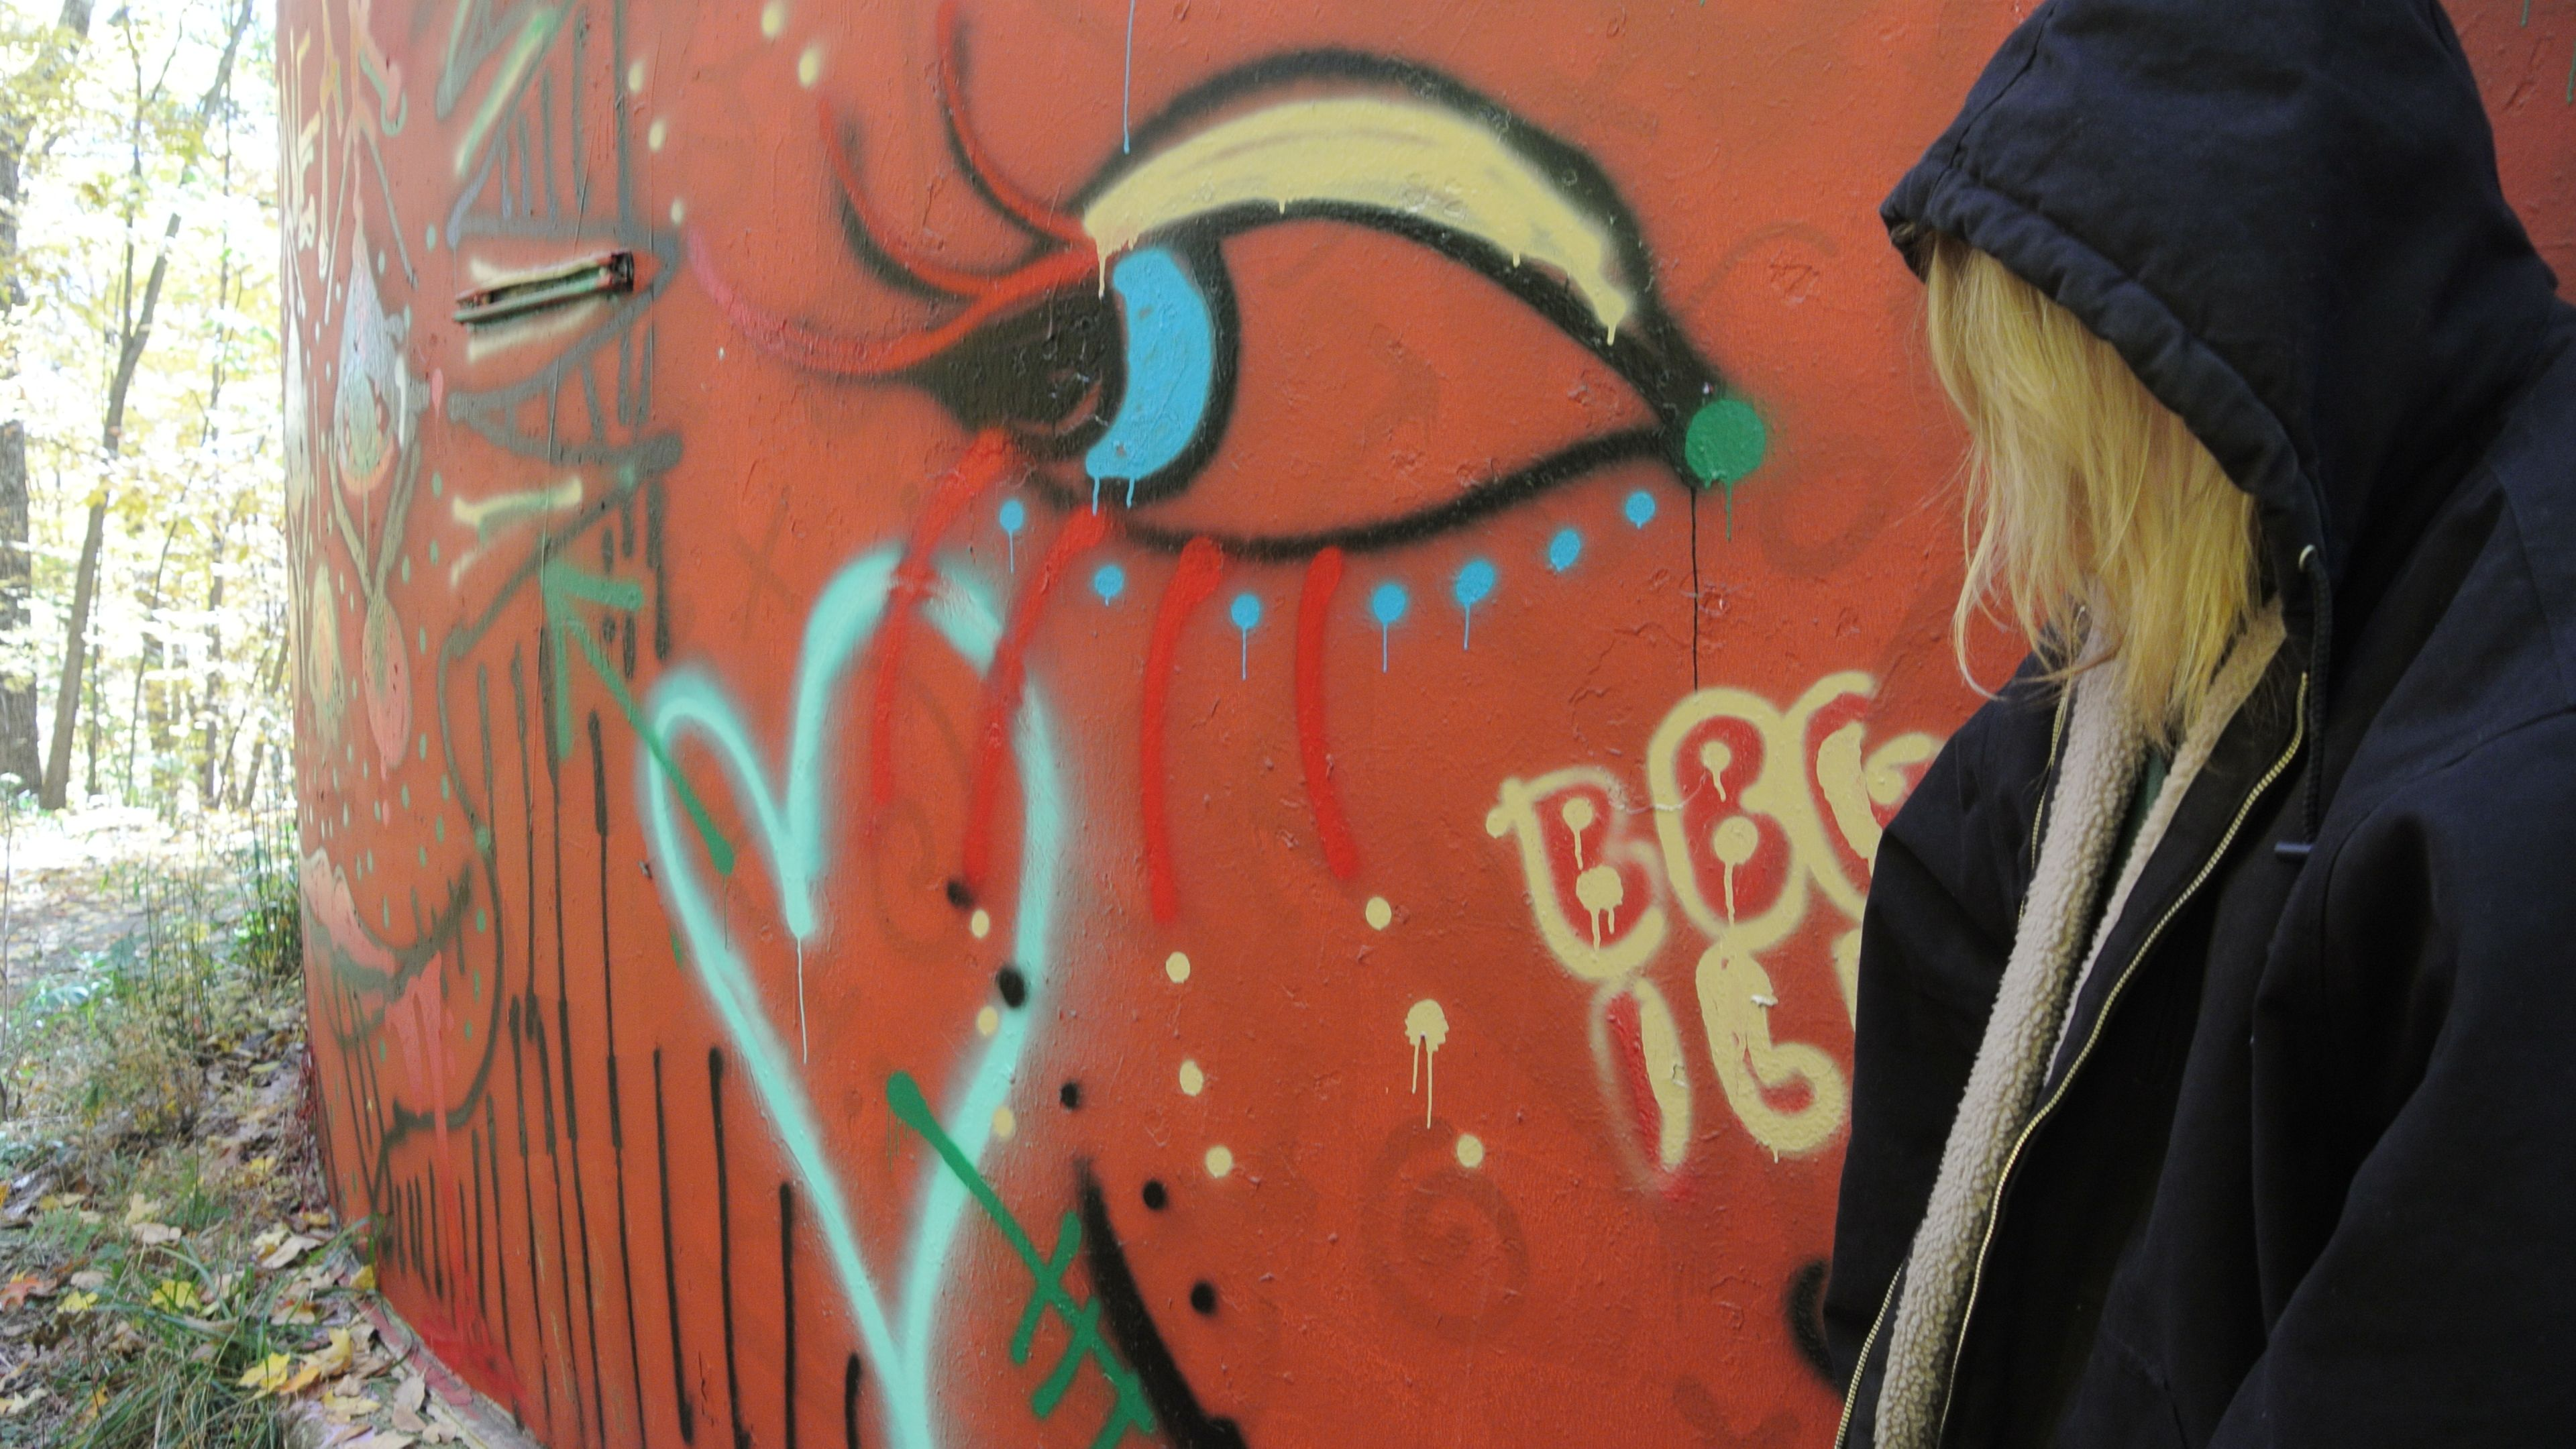 Invisible Youth: Youth Homelessness - Where it's happening, what's being done, and how can I help?